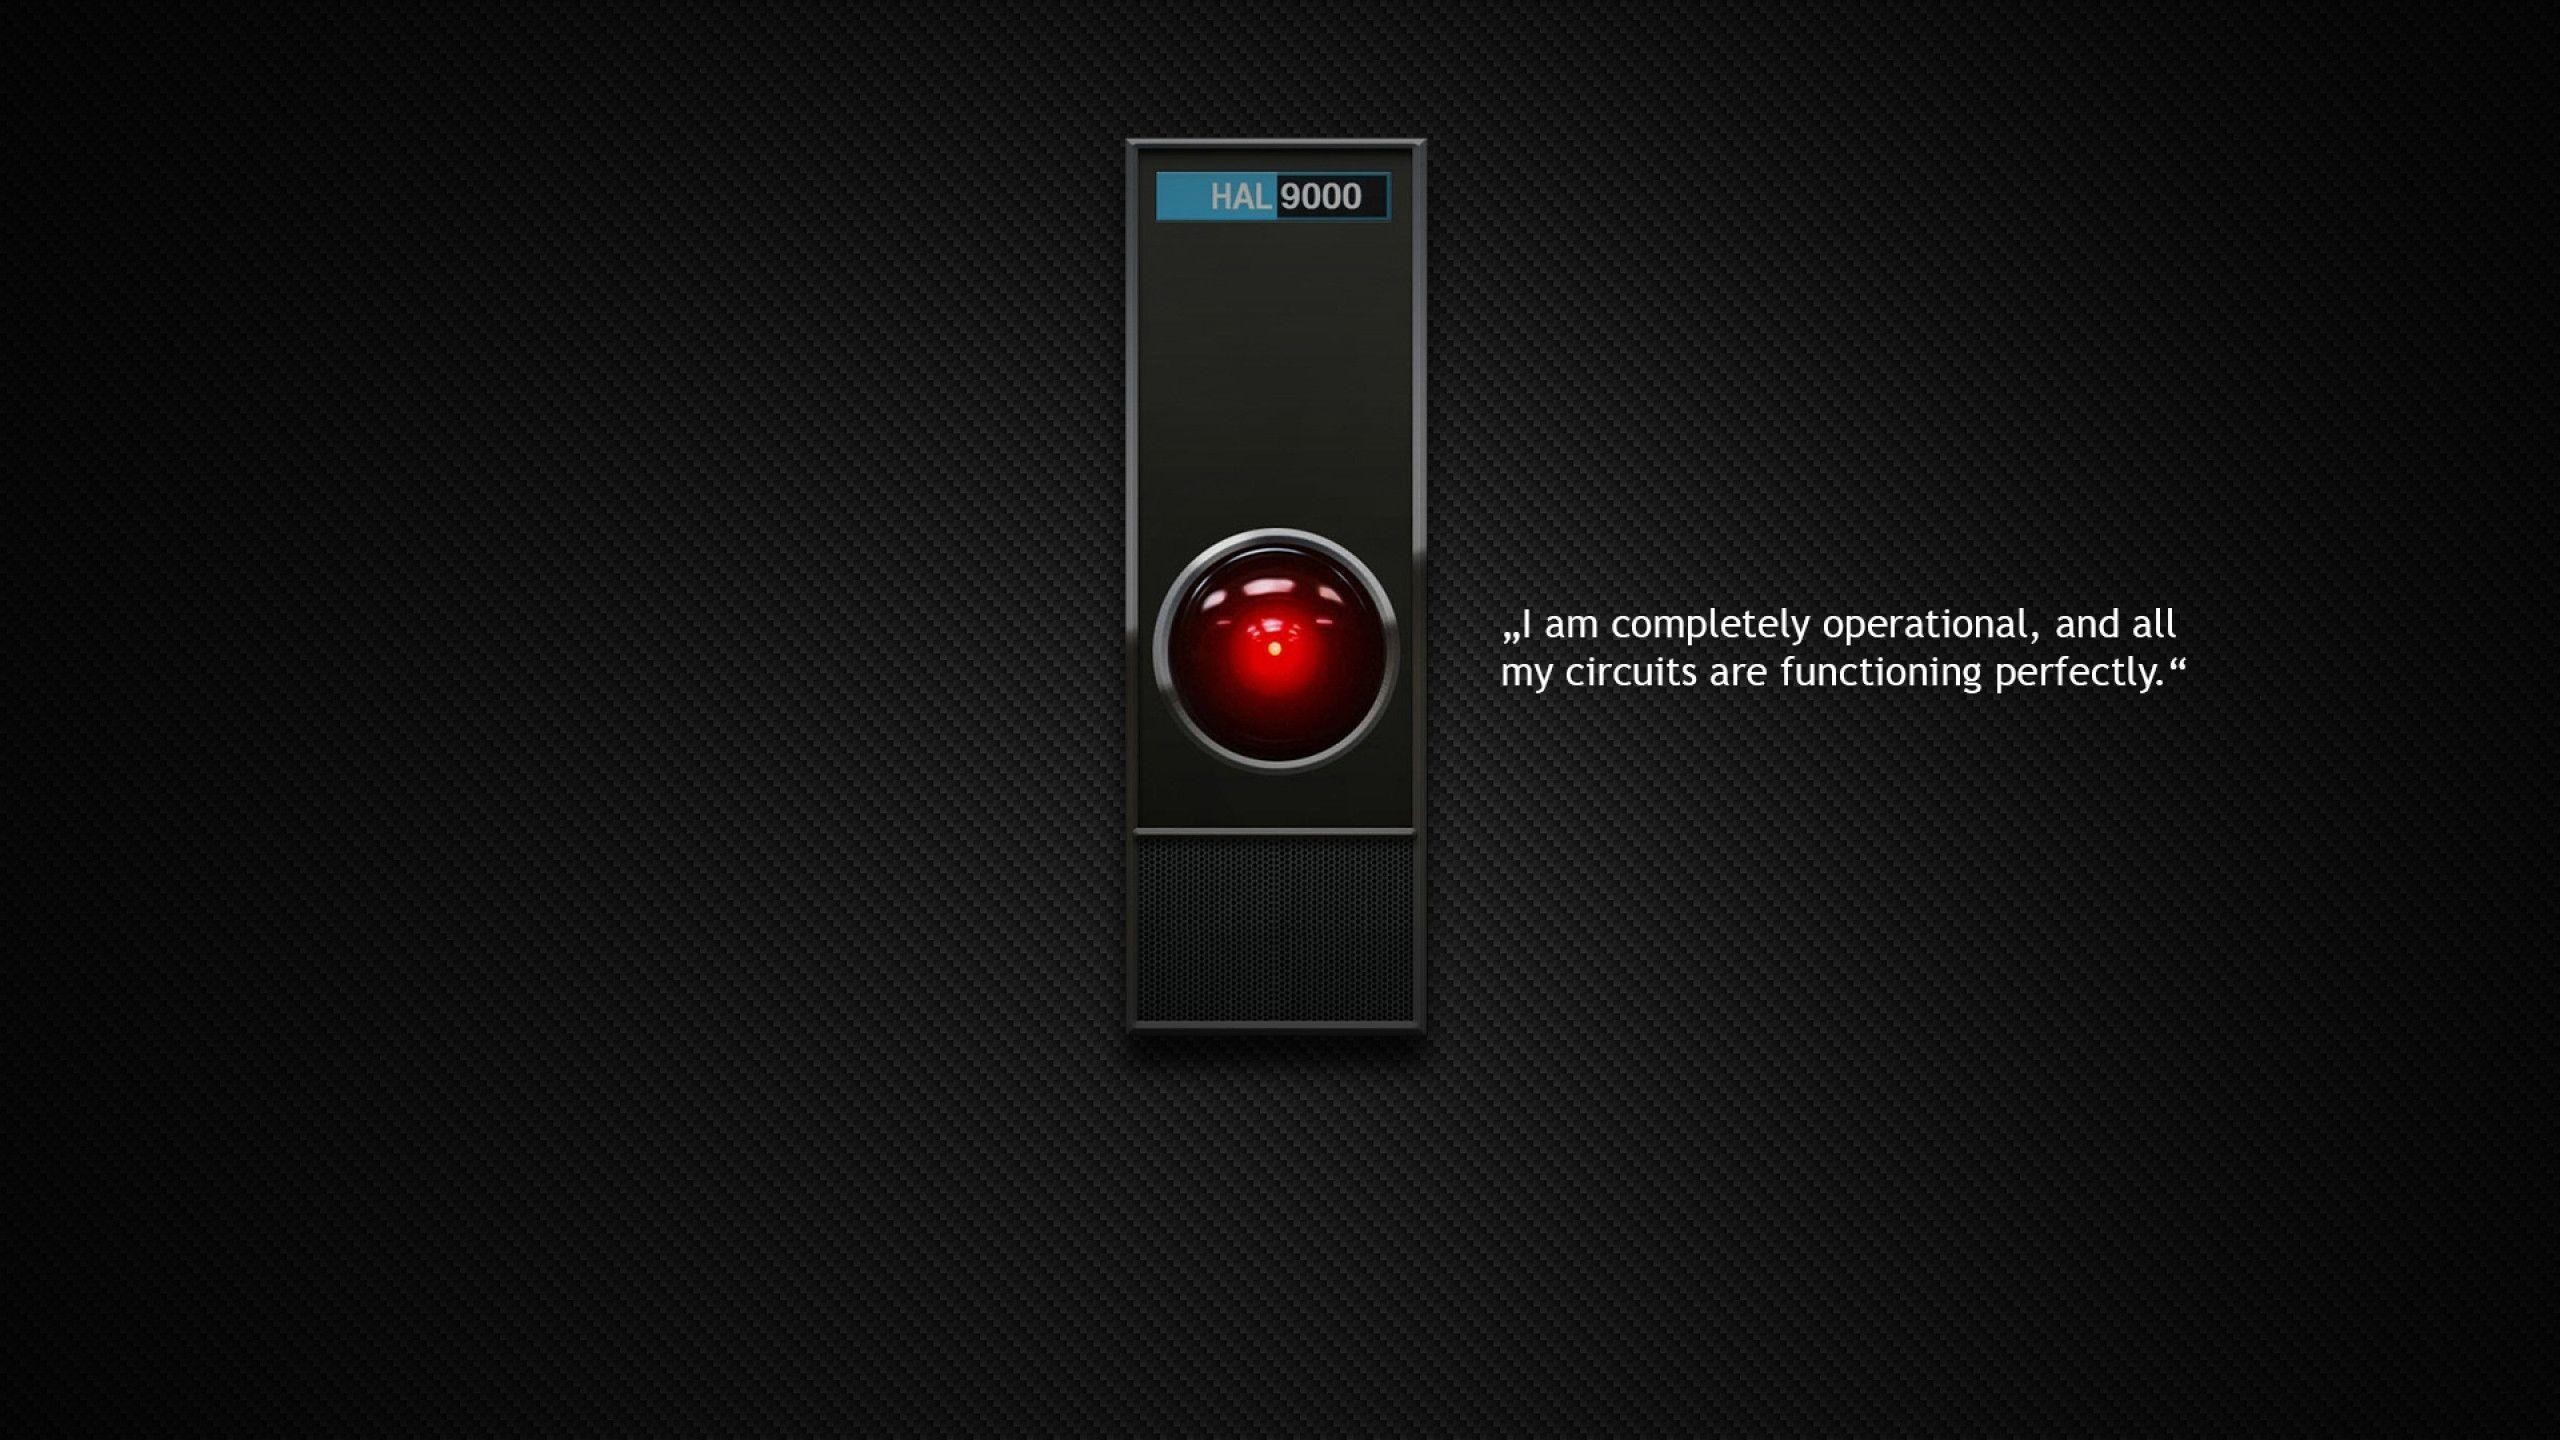 Res: 2560x1440, Download 2001: A Space Odyssey Hal 9000 wallpaper,Download .